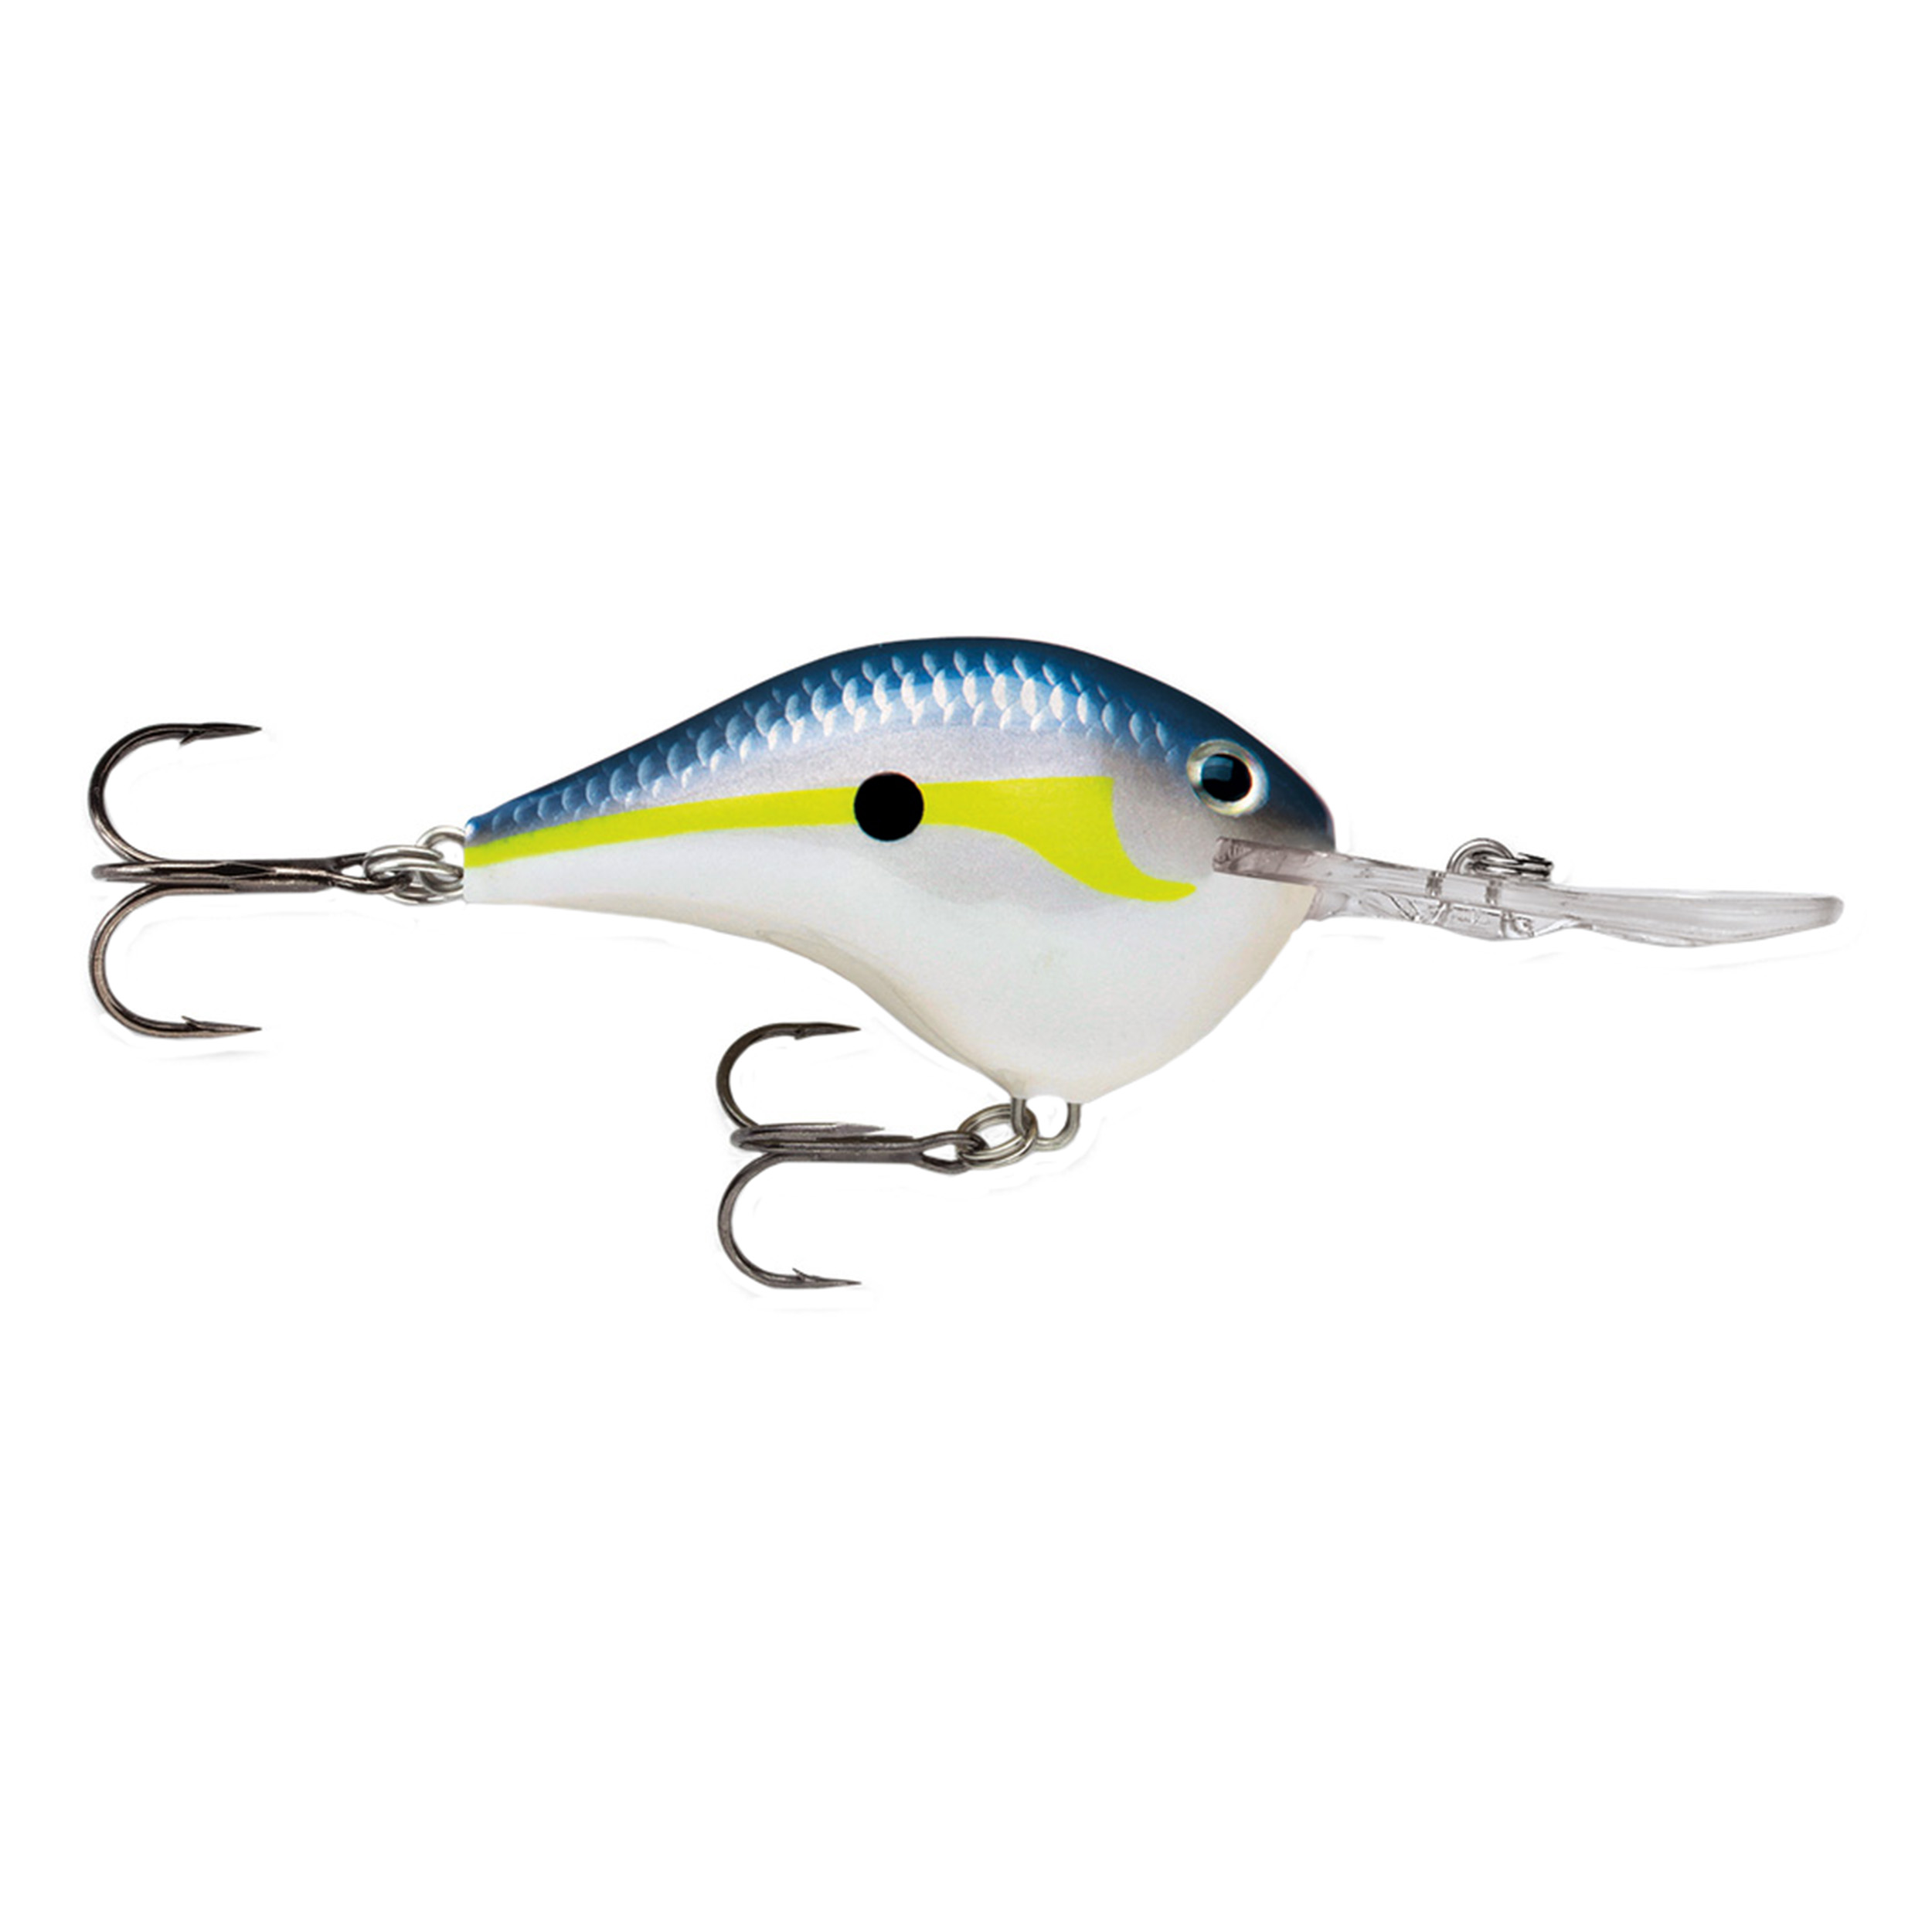 "Rapala Dives-To Series Custom Ink Lure Size 06, 2"" Length, 6' Depth, 2 Number 5 Treble Hooks, Helsinki Shad, Per 1 by Rapala"